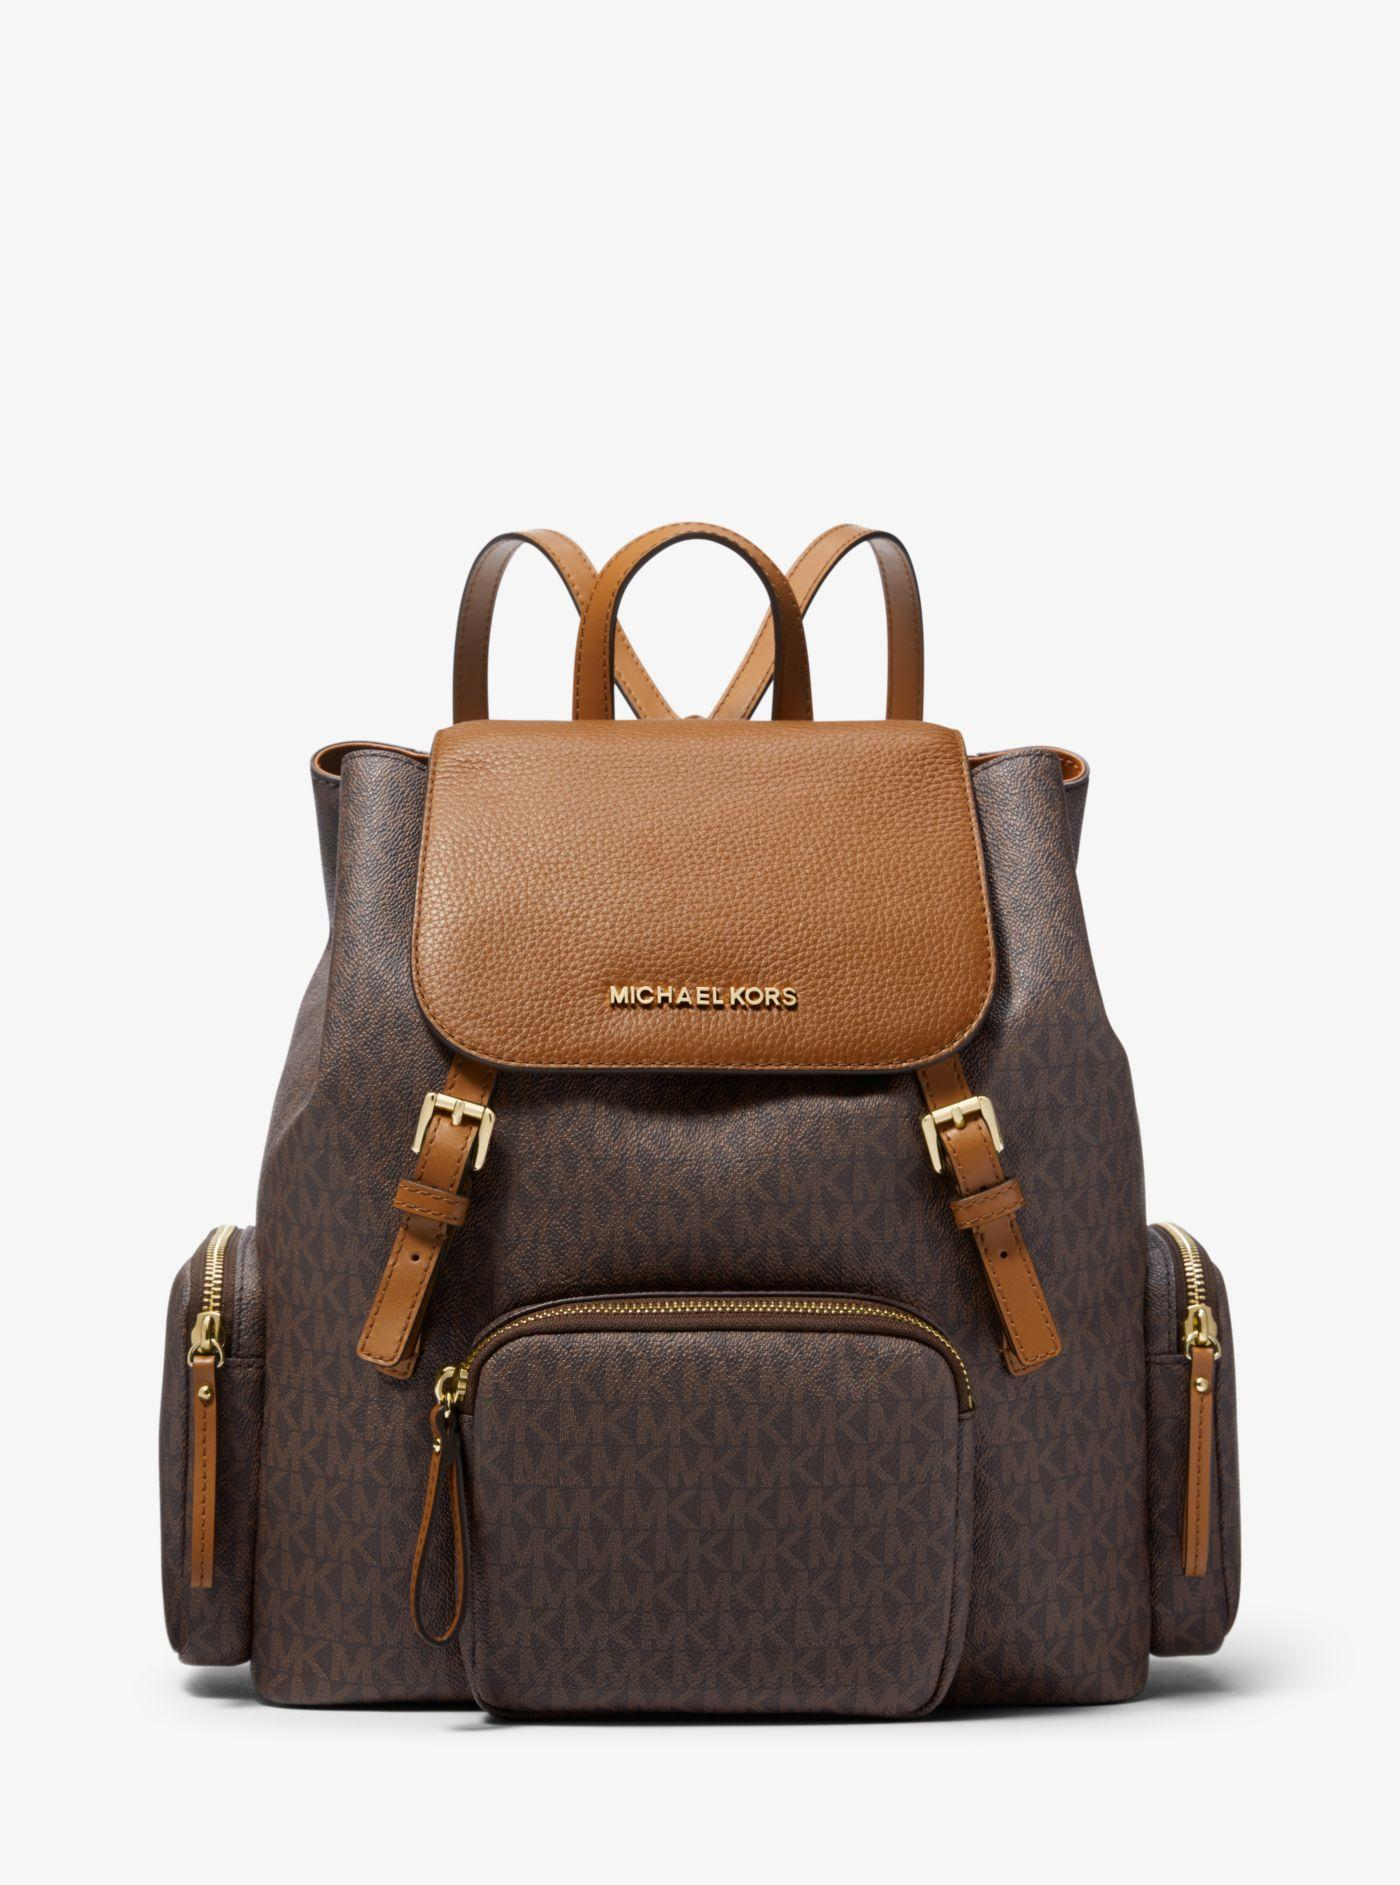 7a7aea7709b3 Michael Kors Abbey Large Logo Cargo Backpack in Brown - Lyst